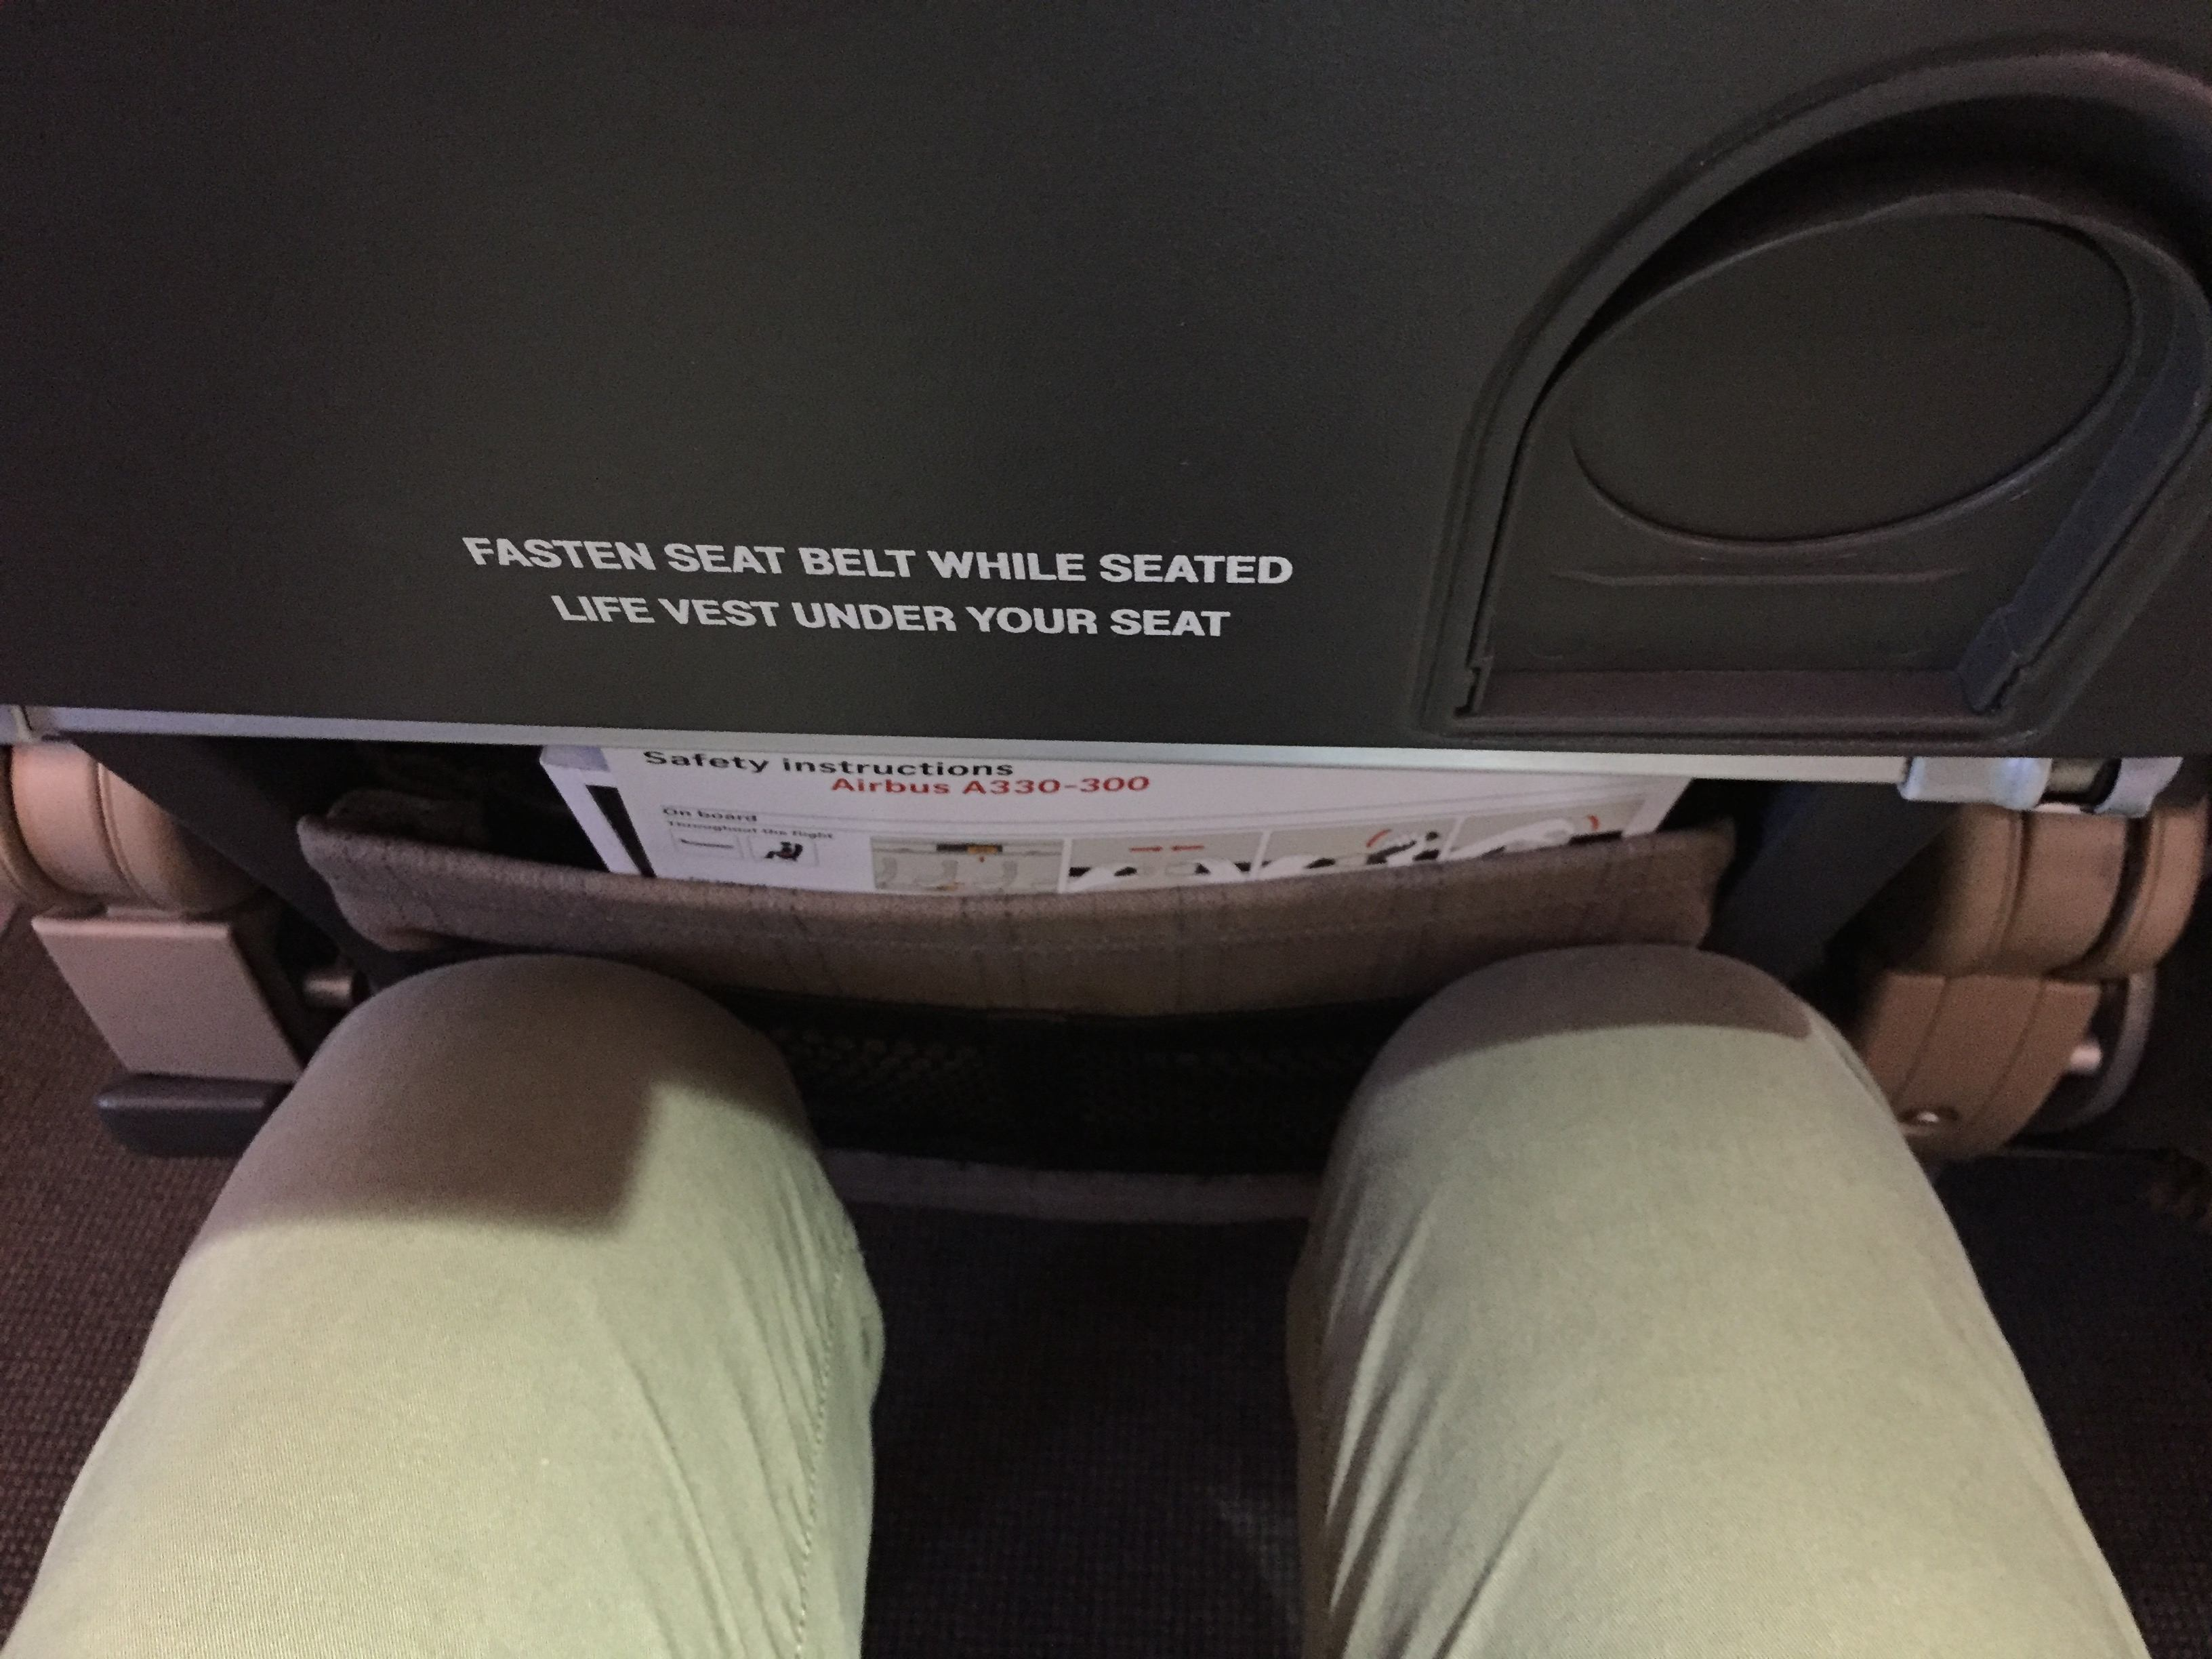 Swiss airlines Economy cabin seat pitch: tight